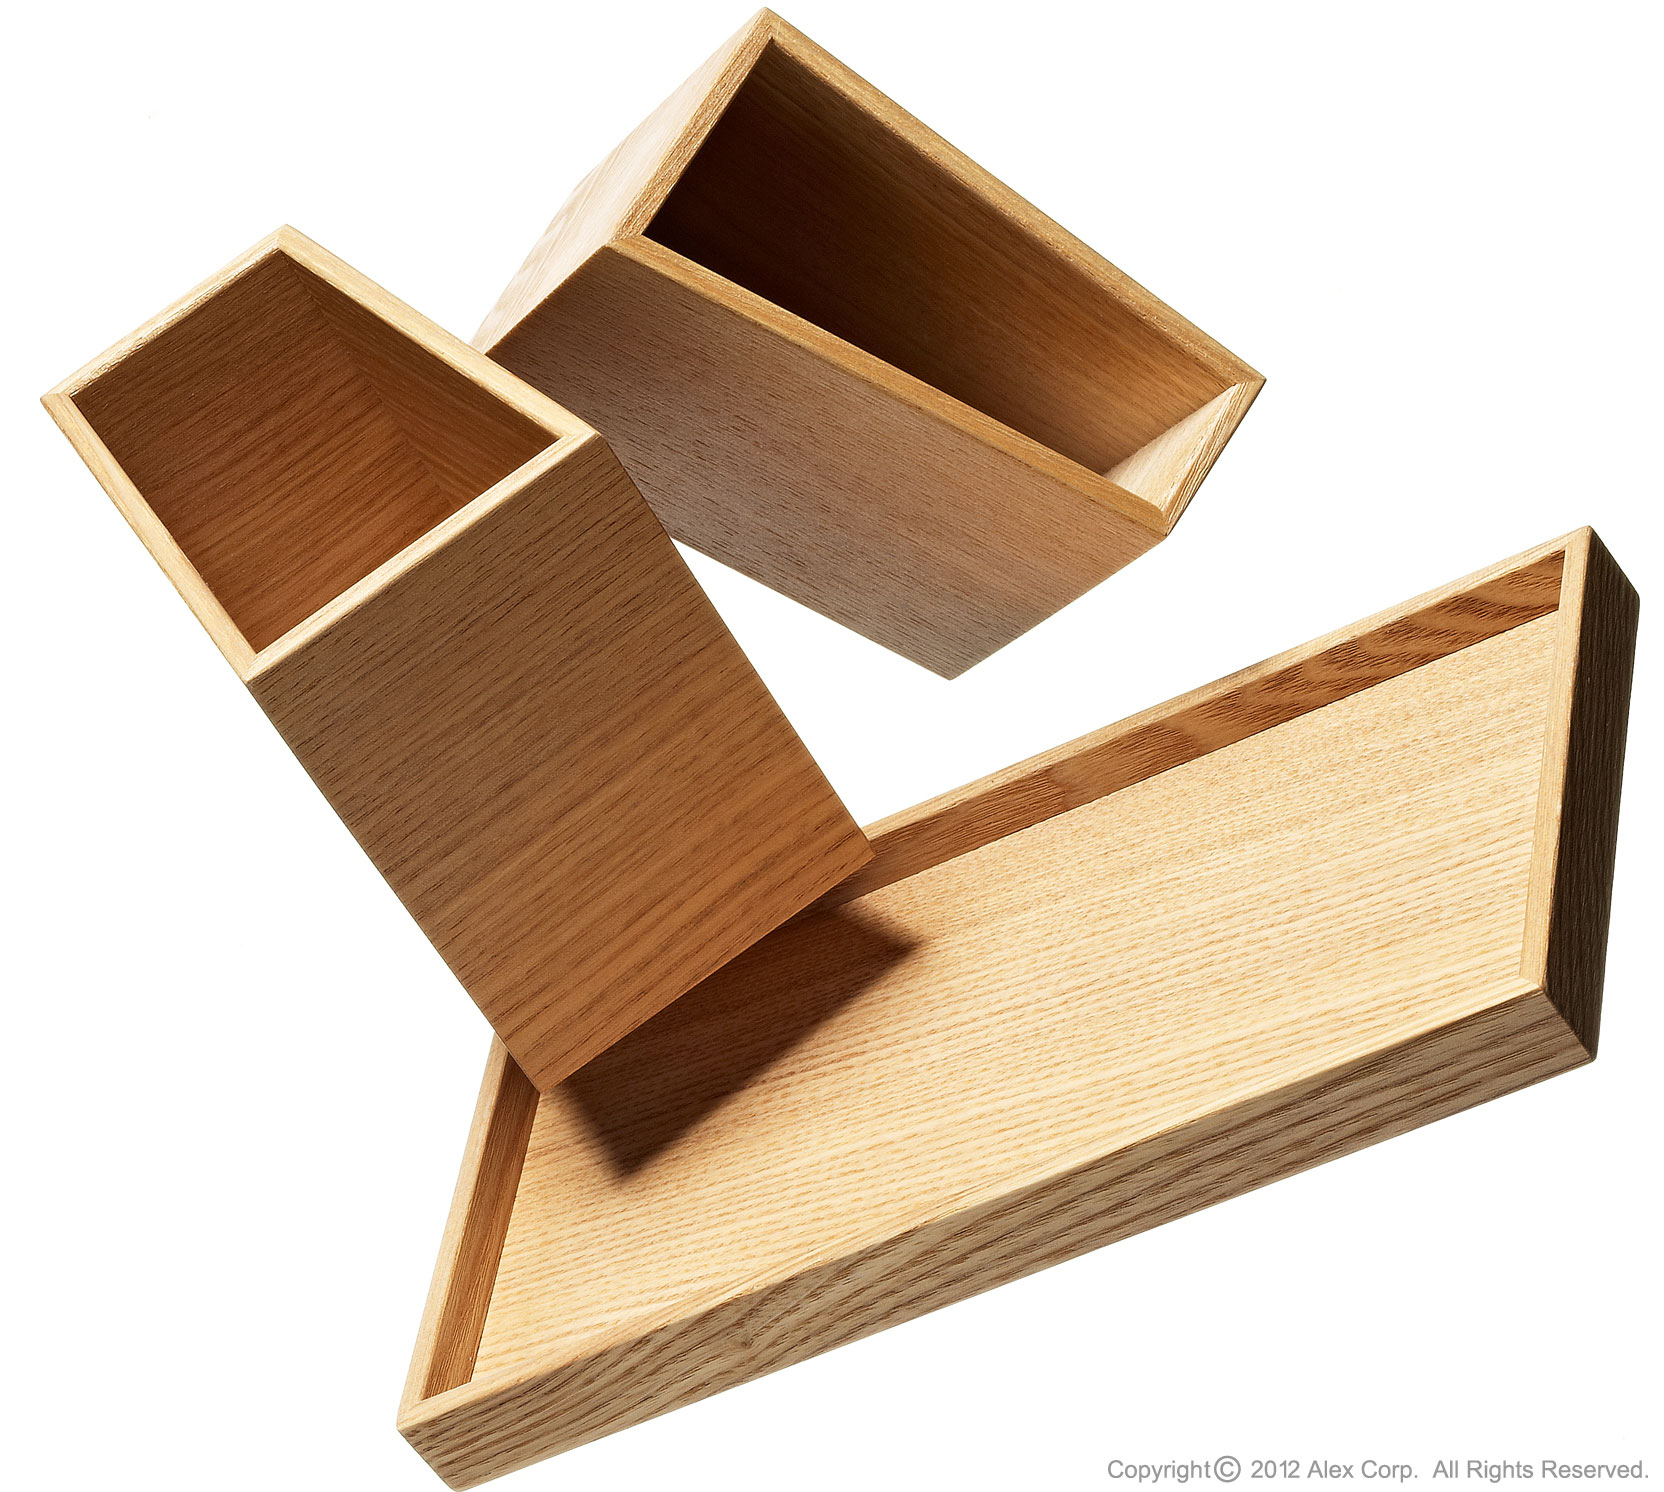 Wood Desk Organizer Set Hacoa Wooden Pen Stand Products Alexcious